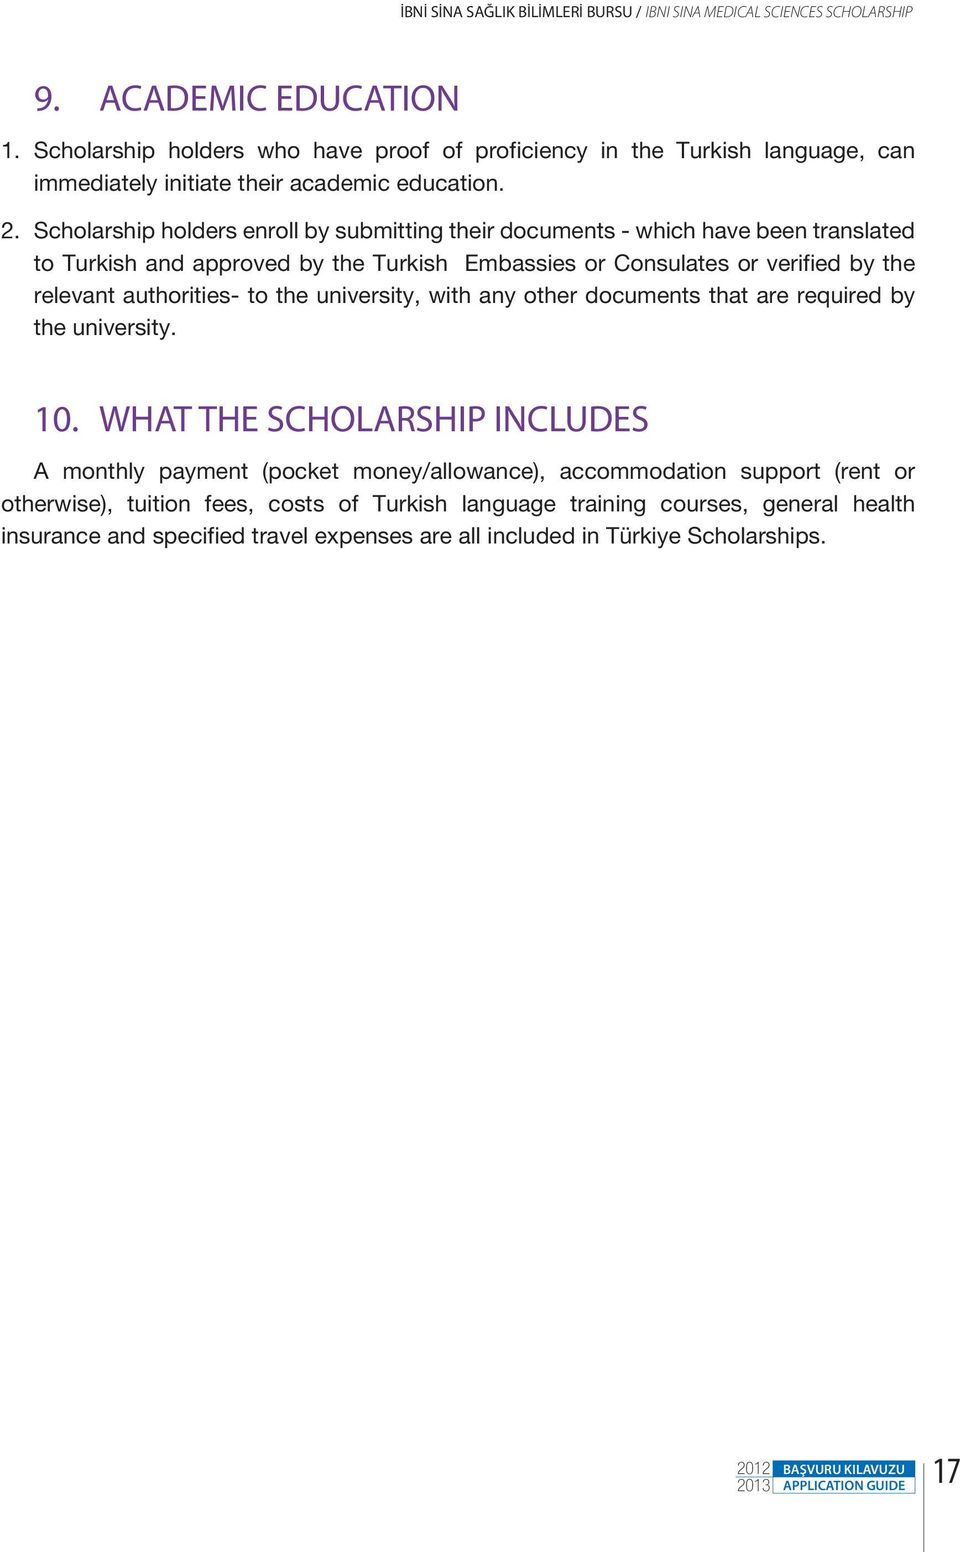 Scholarship holders enroll by submitting their documents - which have been translated to Turkish and approved by the Turkish Embassies or Consulates or verified by the relevant authorities- to